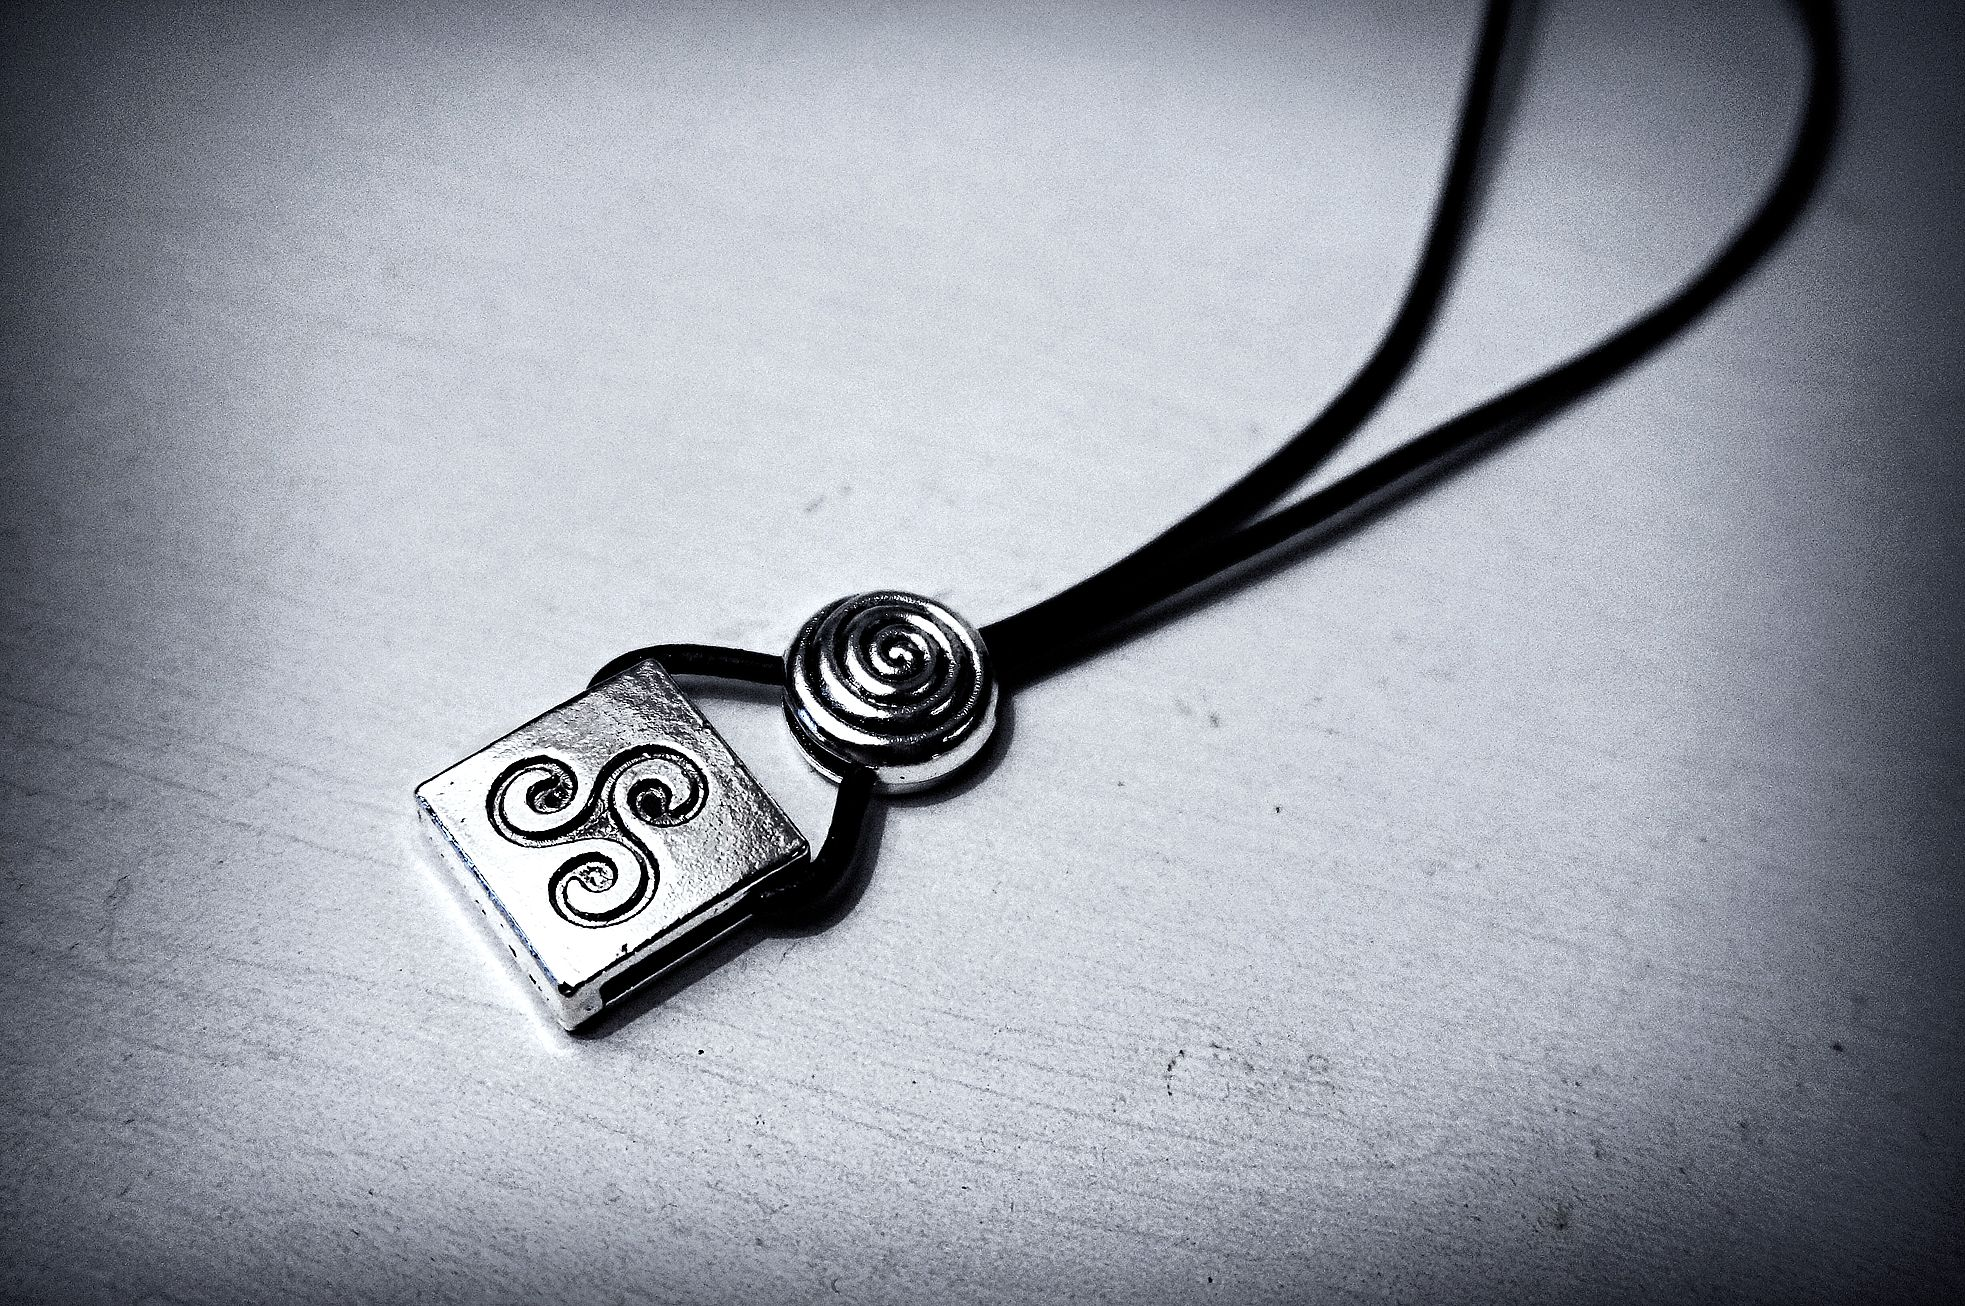 Mens necklace pendant BDSM symbol